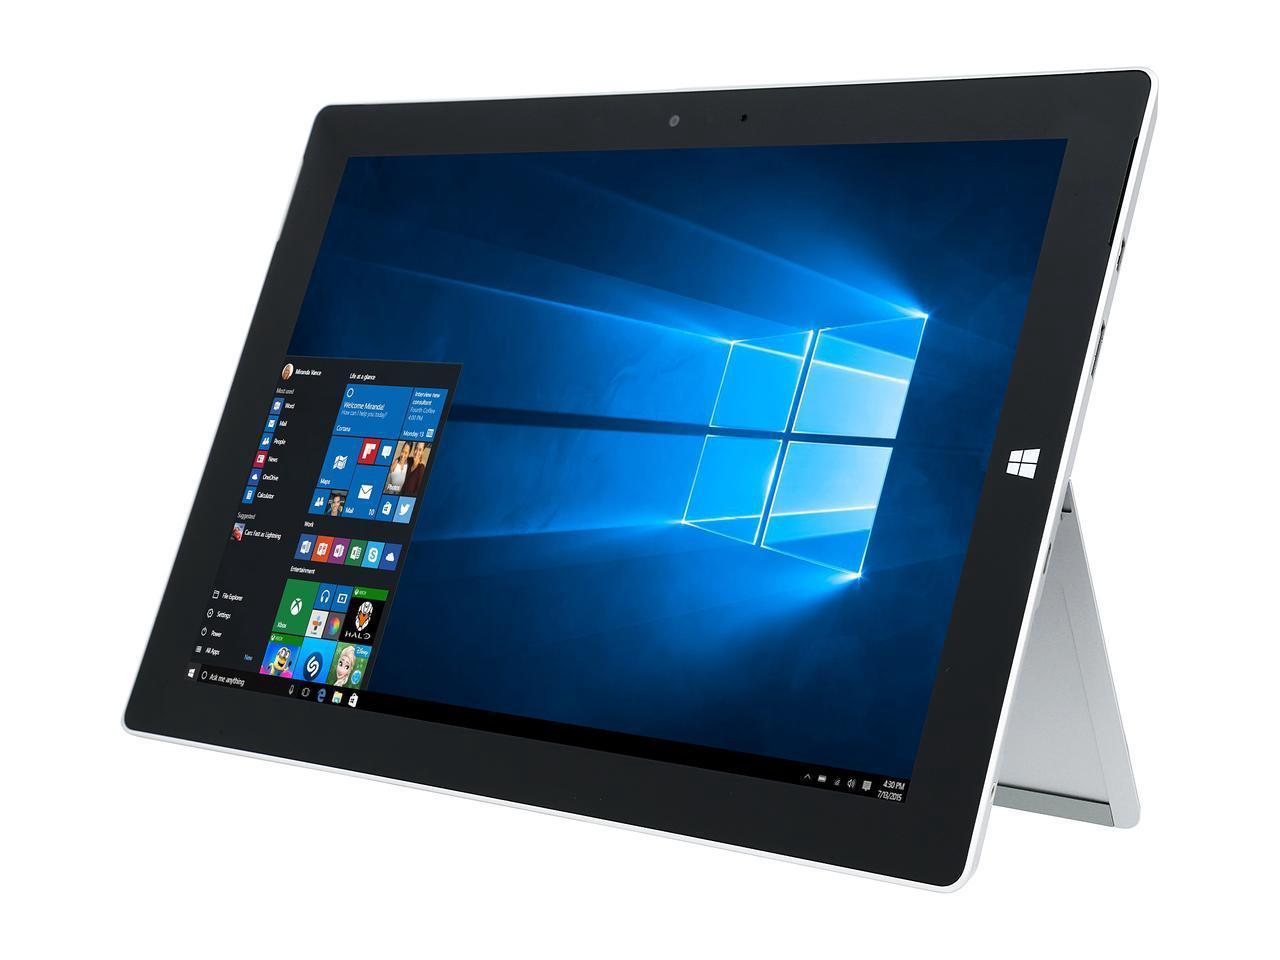 Microsoft Surface 3 Two in one Tablet /Laptop office /business 10 8in  Touchscreen 4 GB Memory 128 GB SSD WiFi + 4G LTE Tablet Bundle GL4-00009  (Tablet